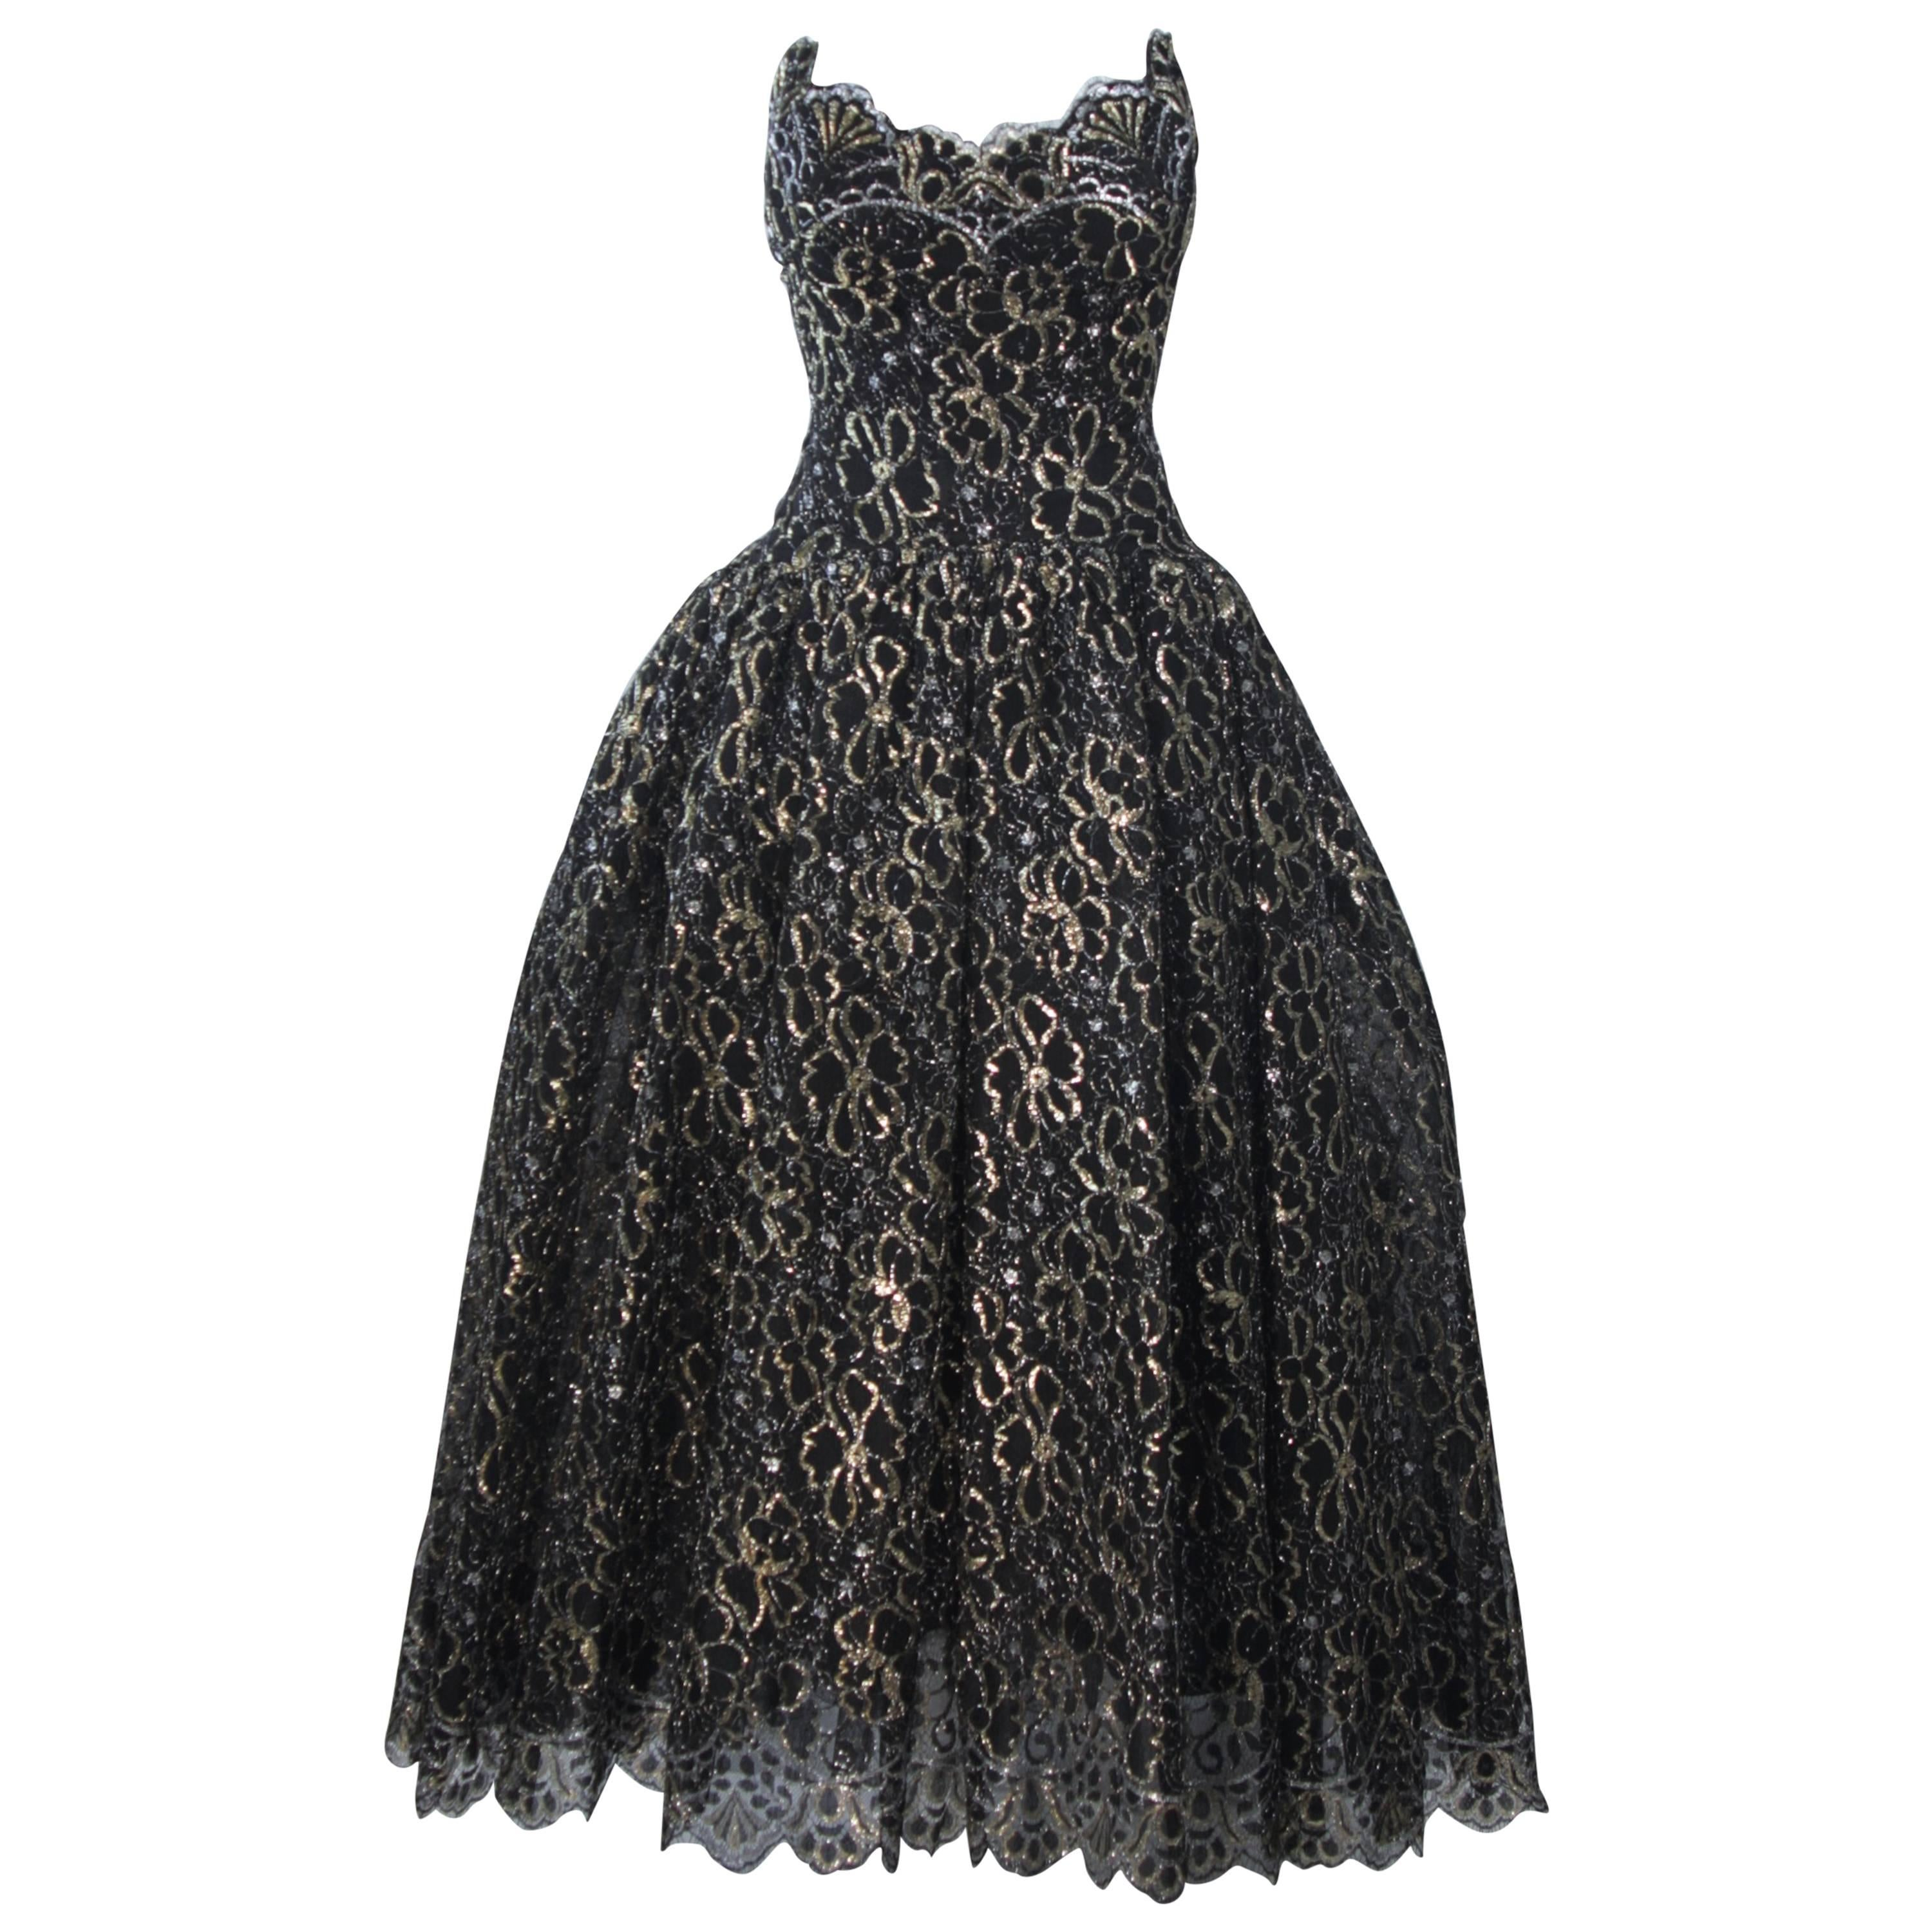 SCAASI Black and Gold Floral Metallic Lace Bustier Gown Size 4-6